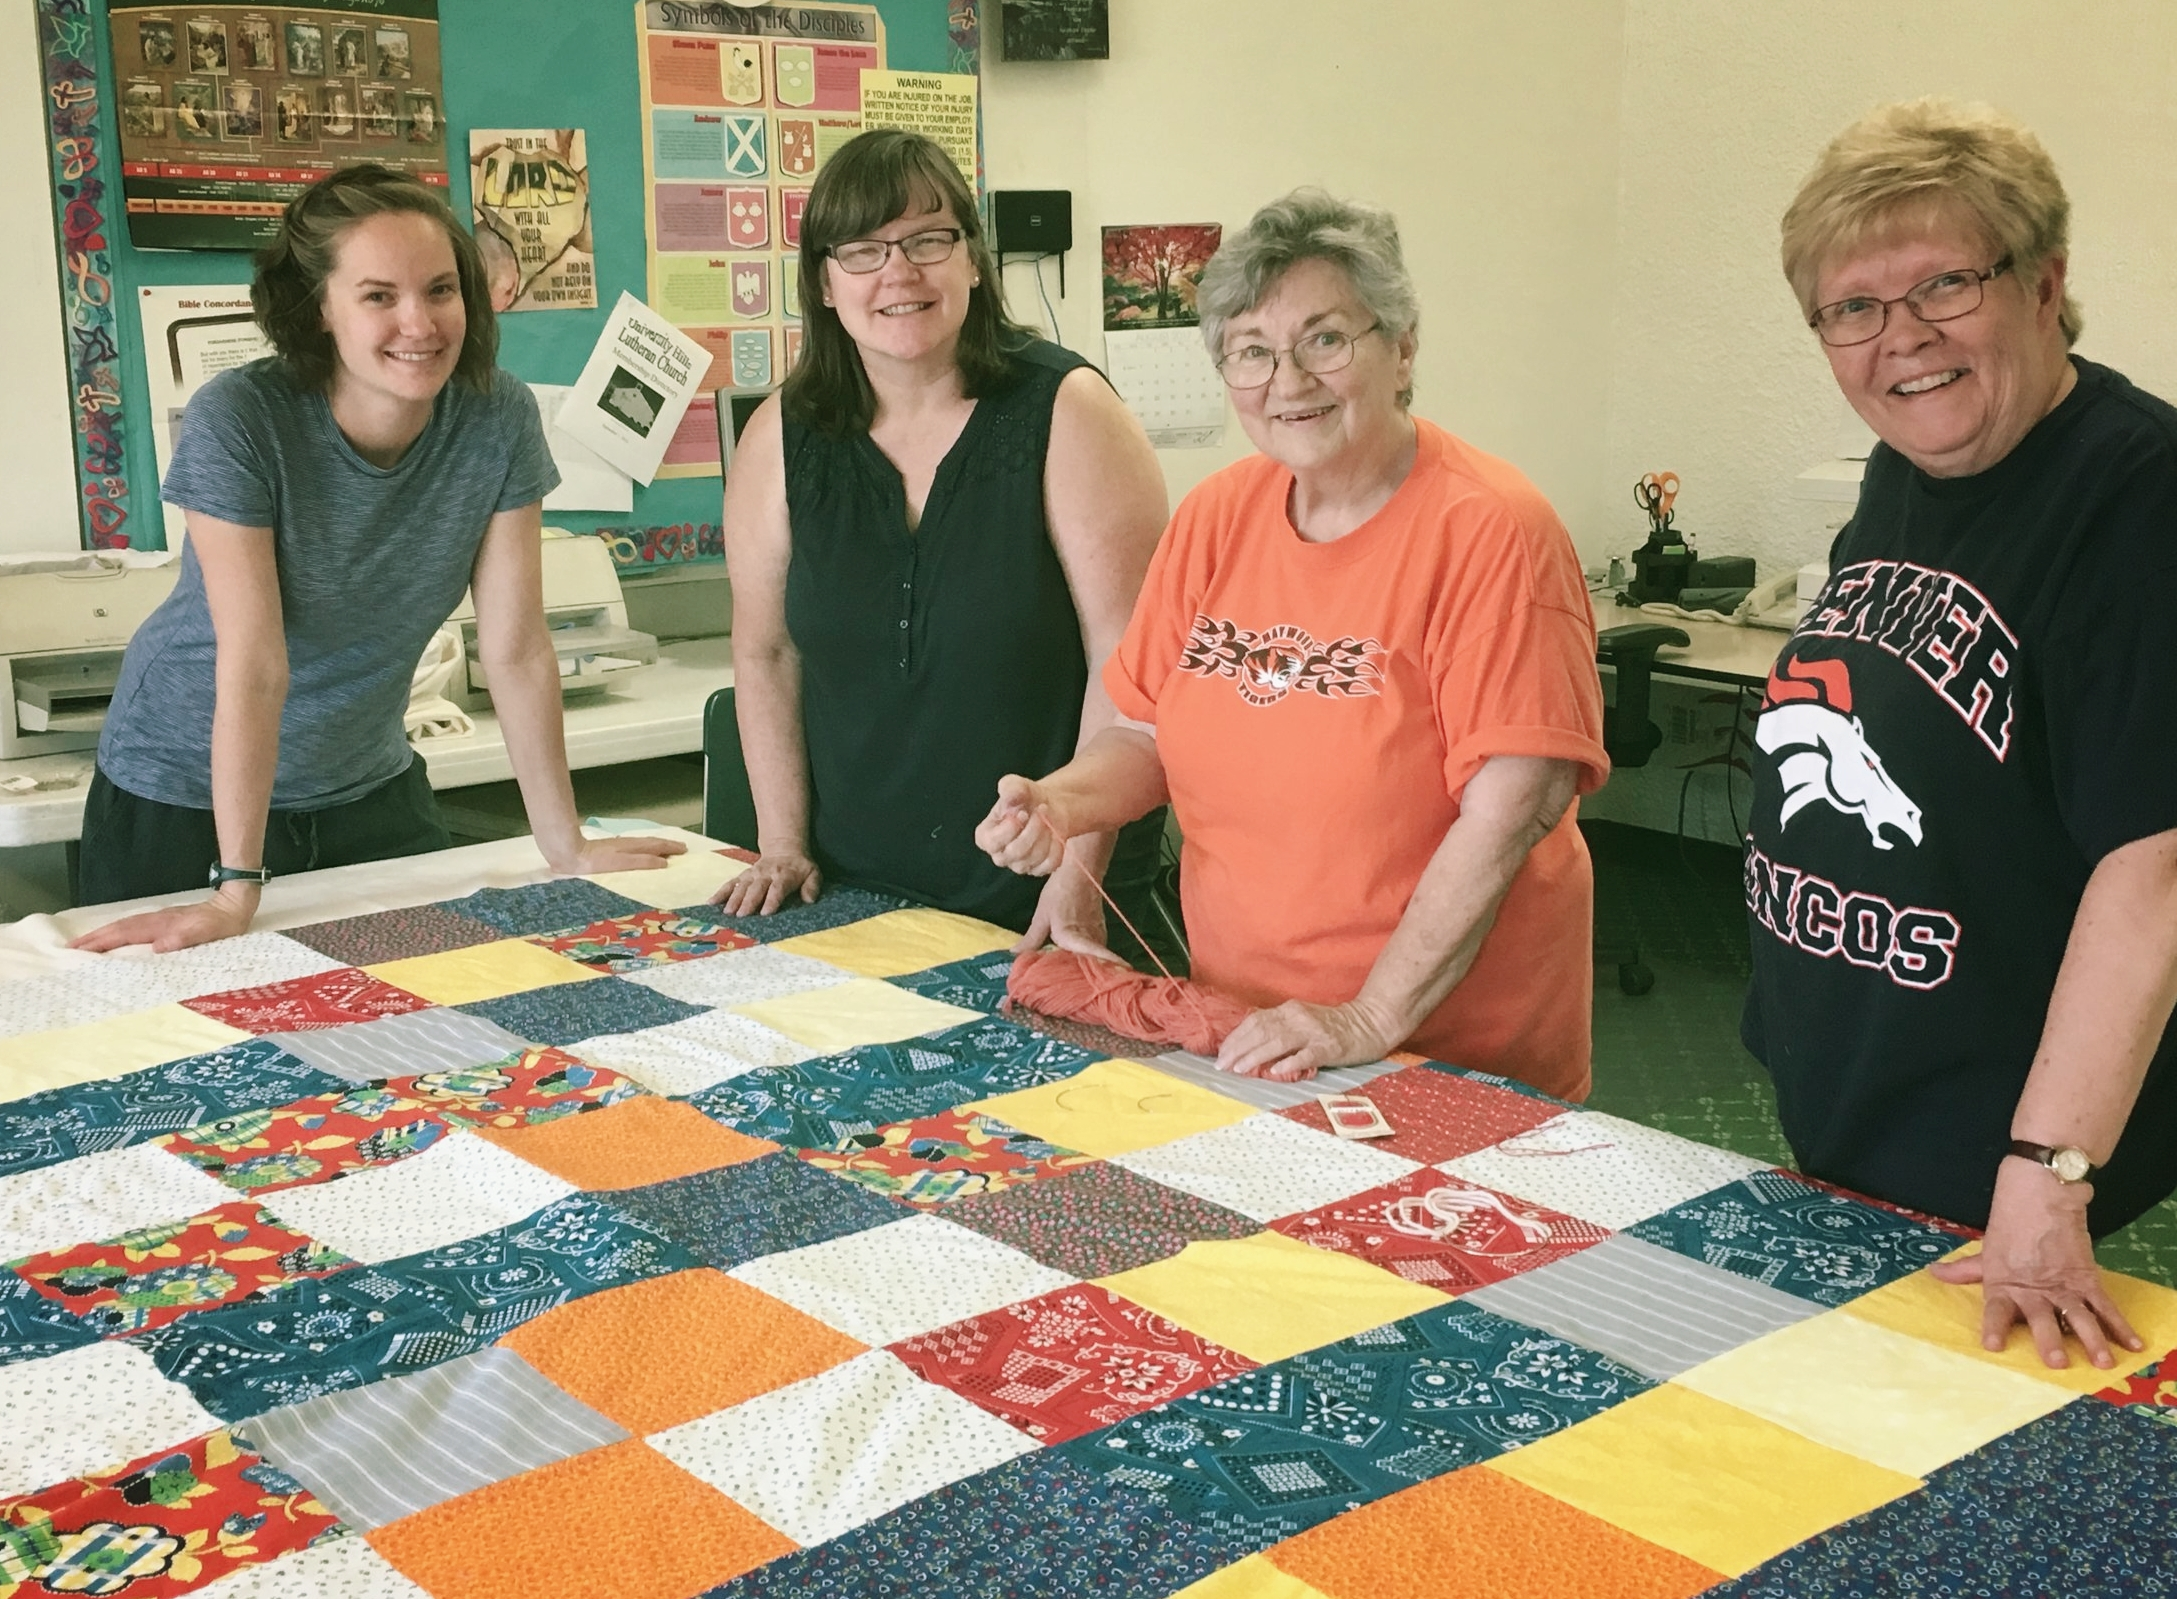 Ladies from our Quilt Group working on a project.